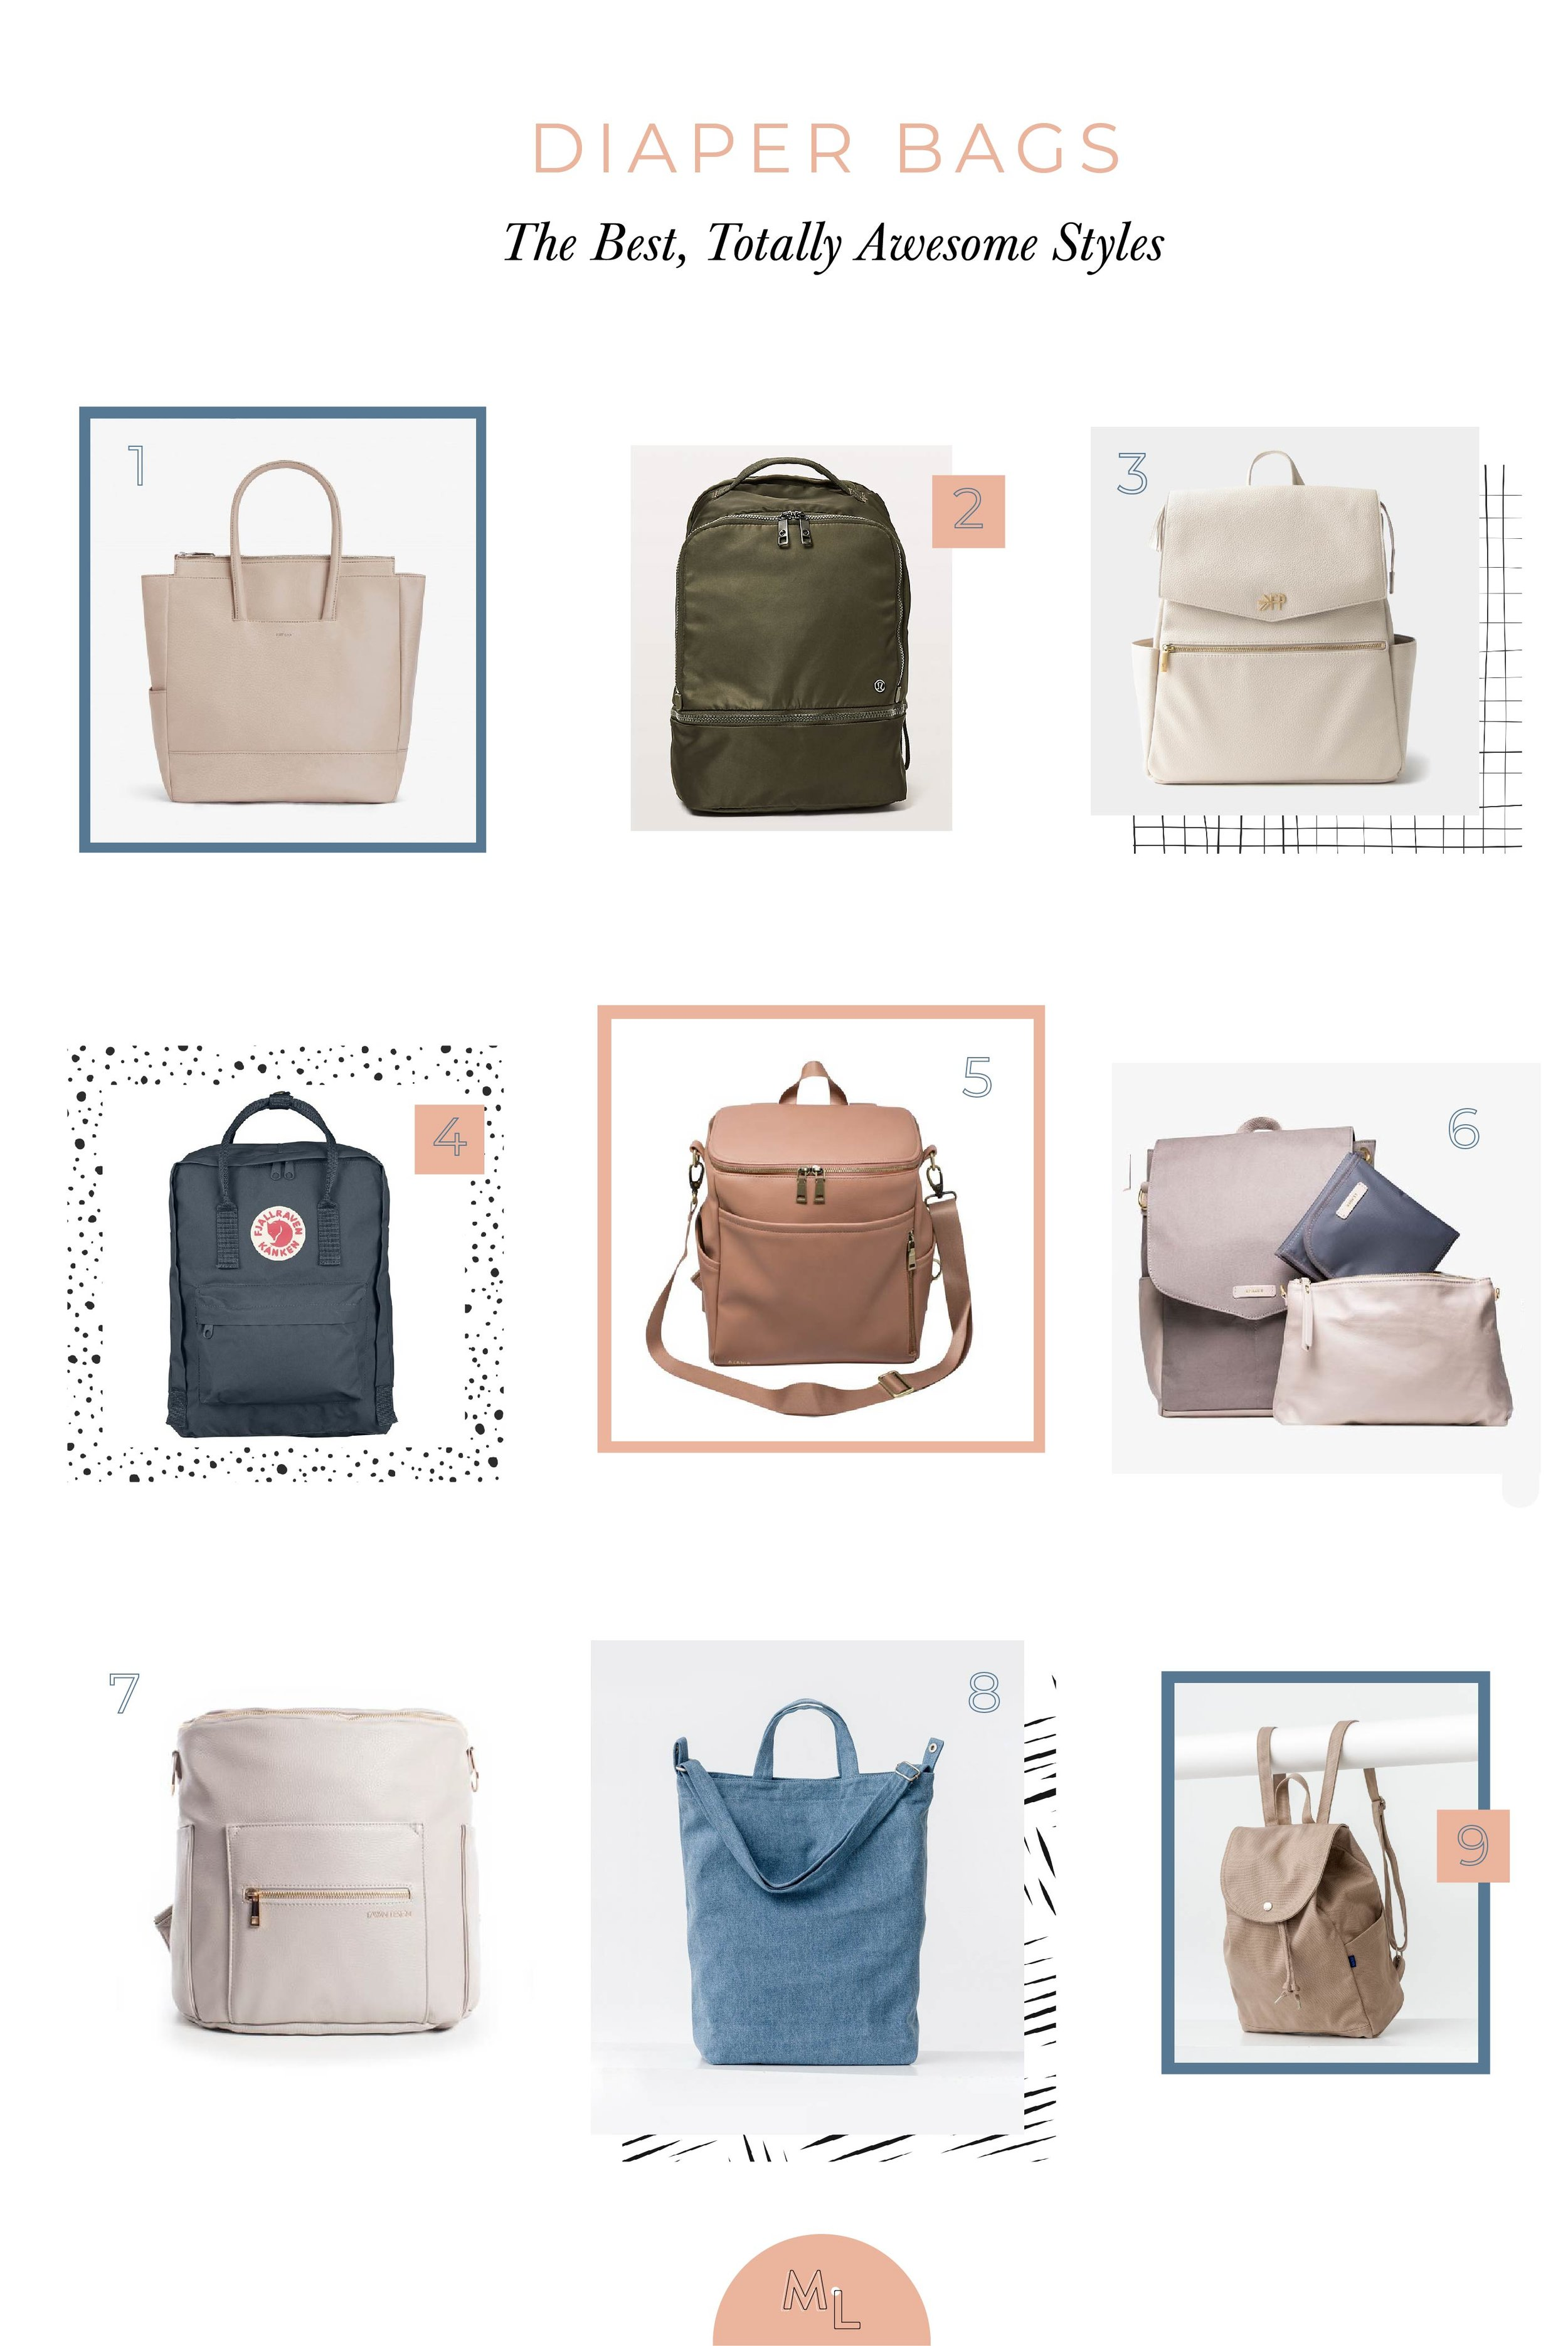 The Best Totally Awesome Diaper Bags